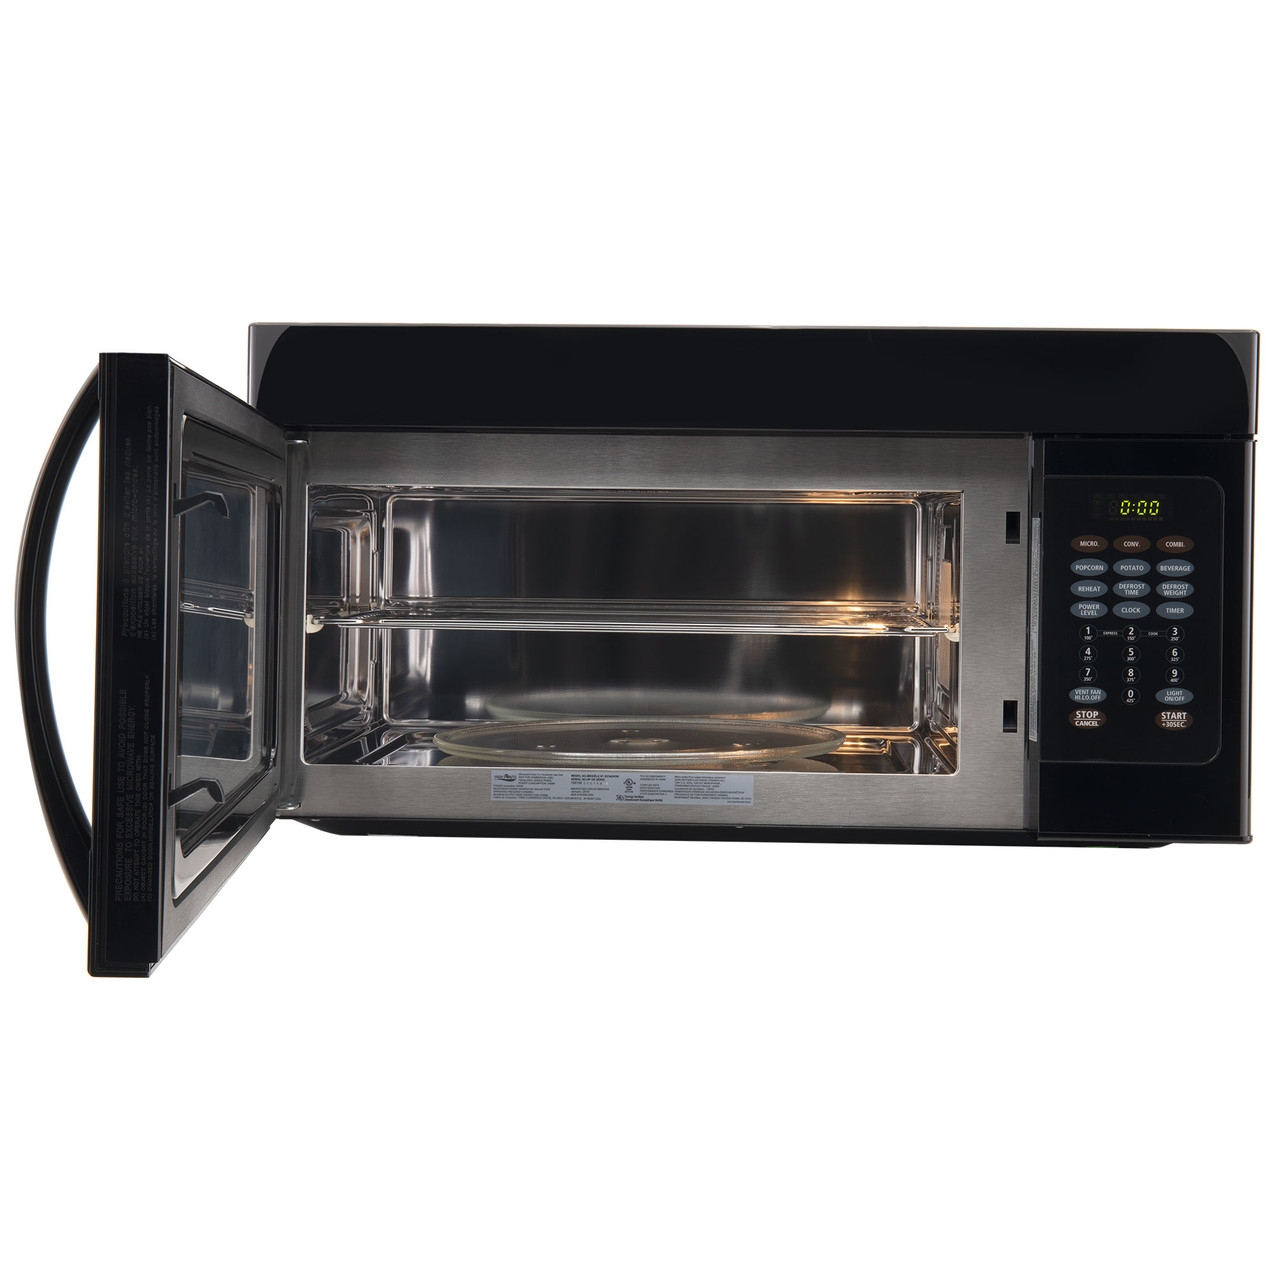 rv microwave 30 over the range convection oven black finish